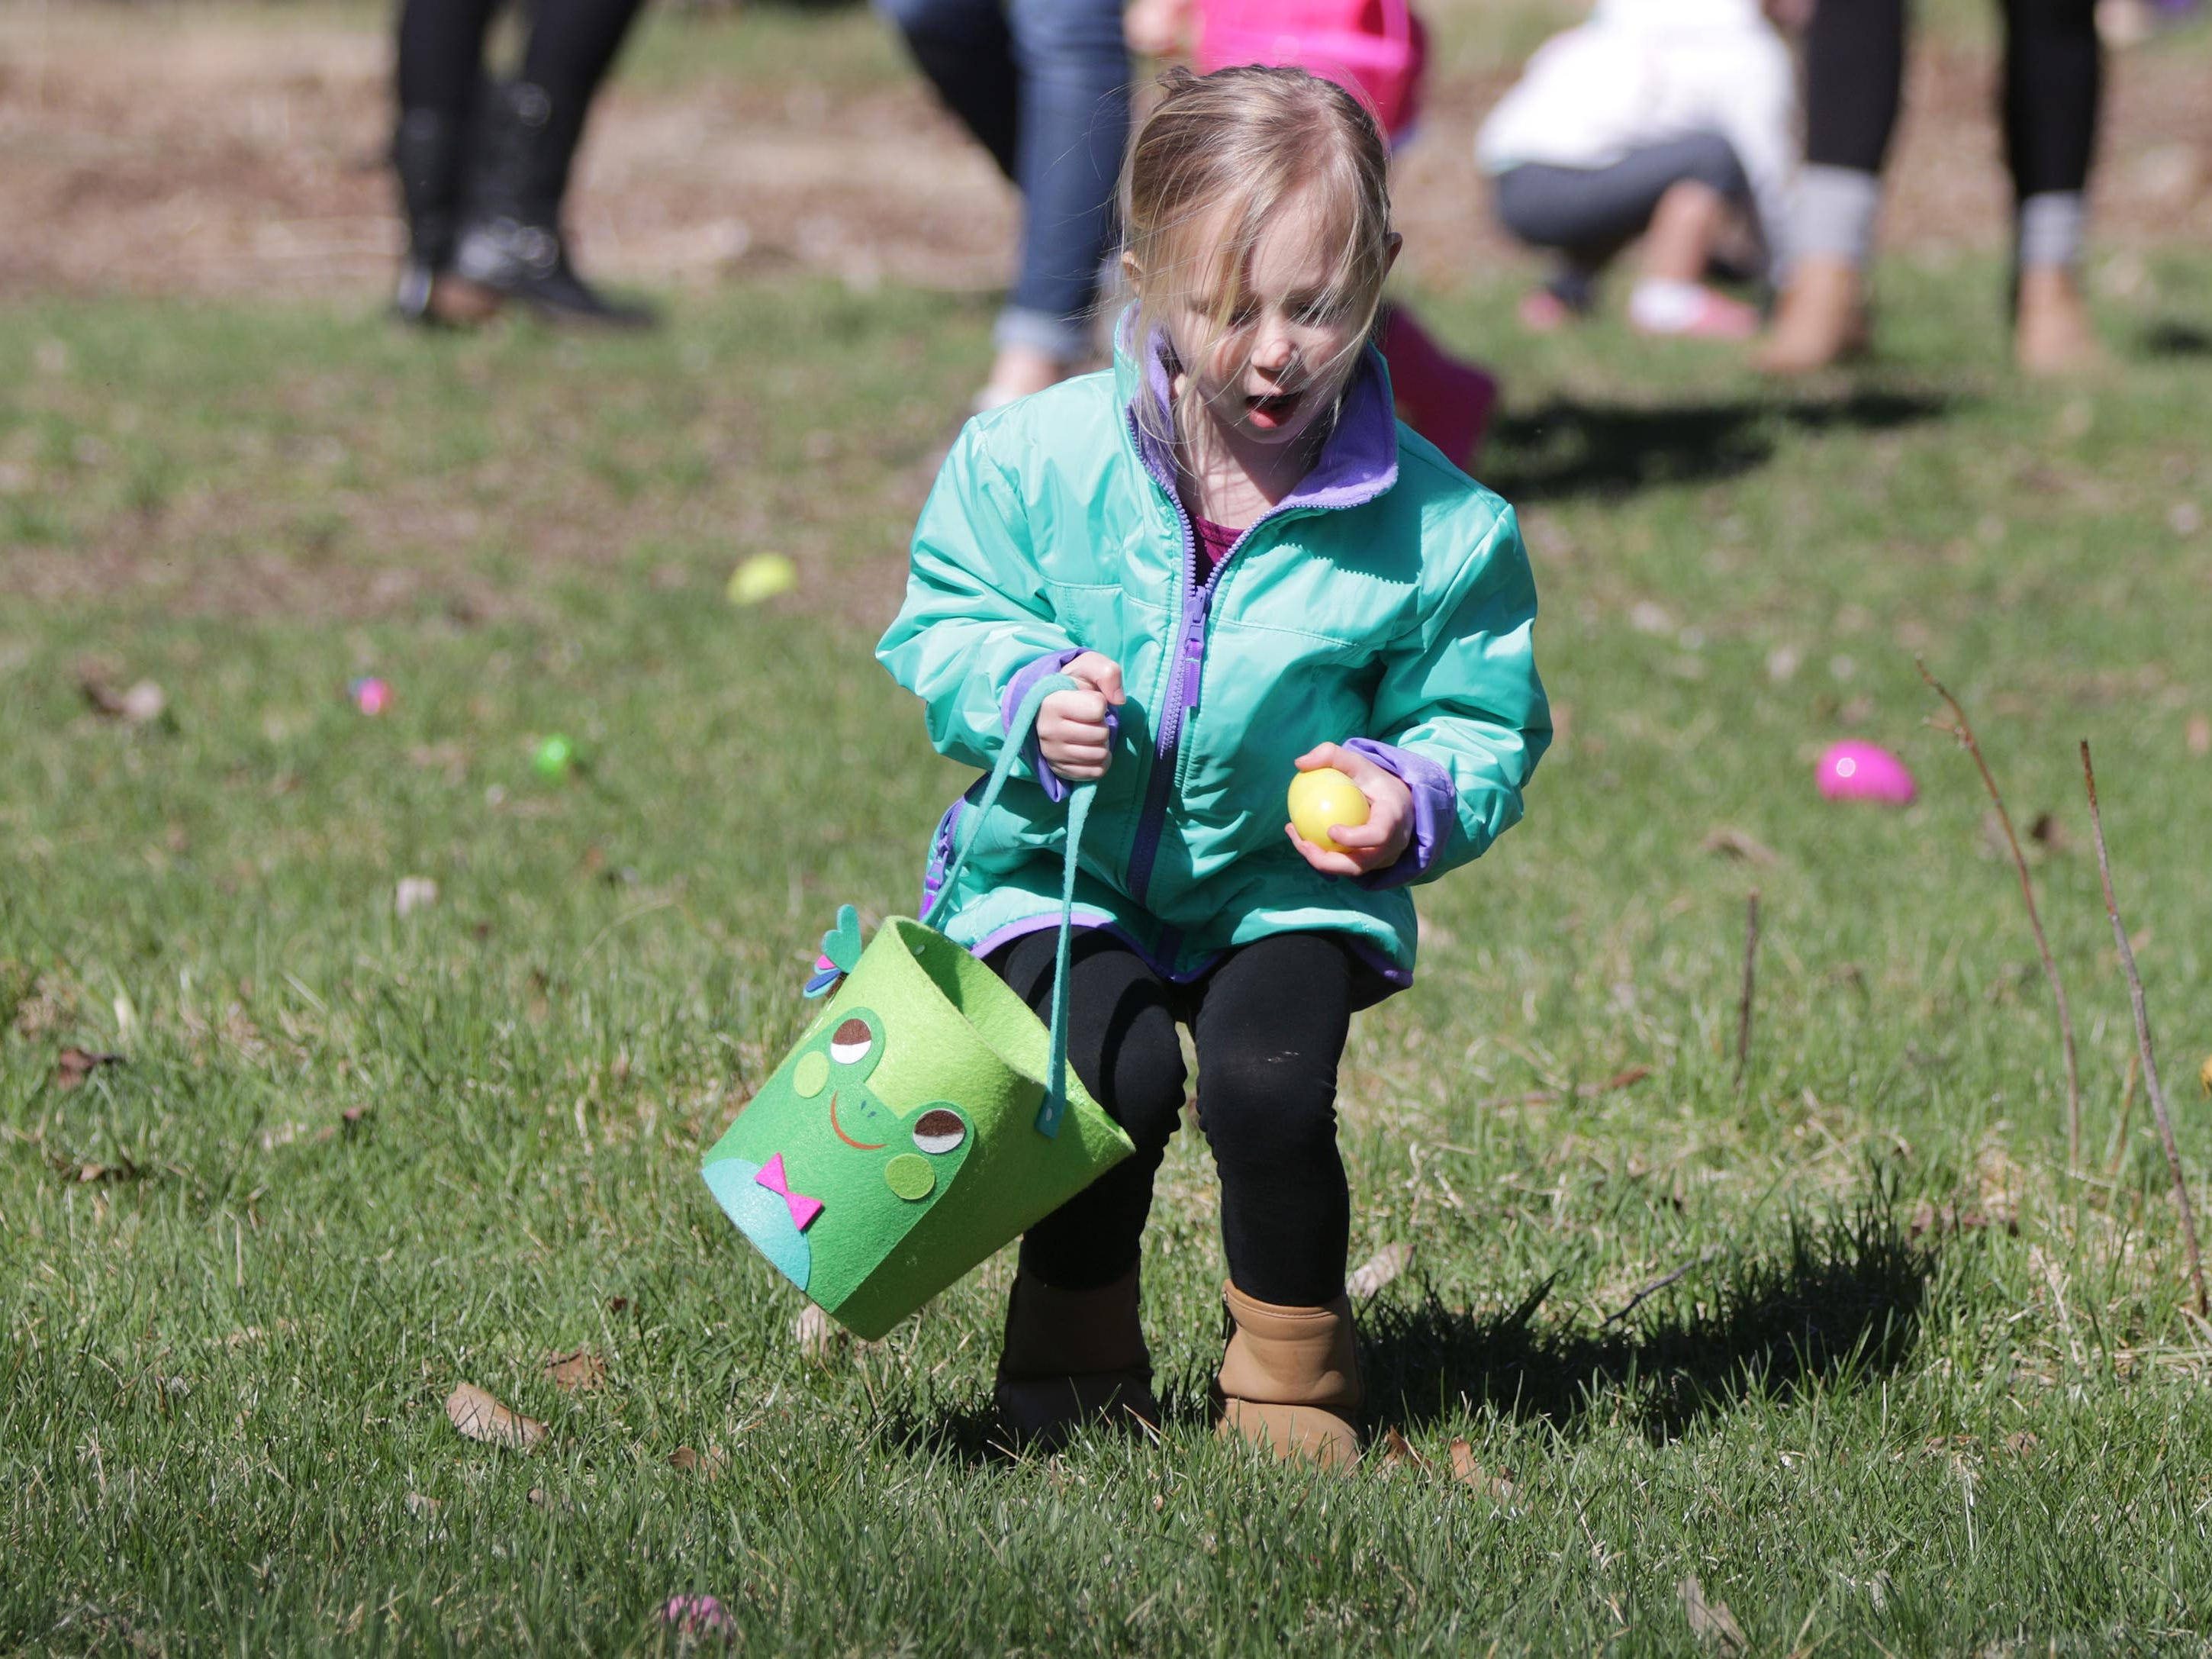 Tessa Jacobchick, 3, of Oostburg, Wis., gathers eggs at the Hocevar Easter Egg Hunt, Saturday, April 20, 2019, in Sheboygan Falls, Wis.  This years marks 25 years for the Hocevar Family holding an Easter egg hunt at their home, according to Kathy Hocevar.